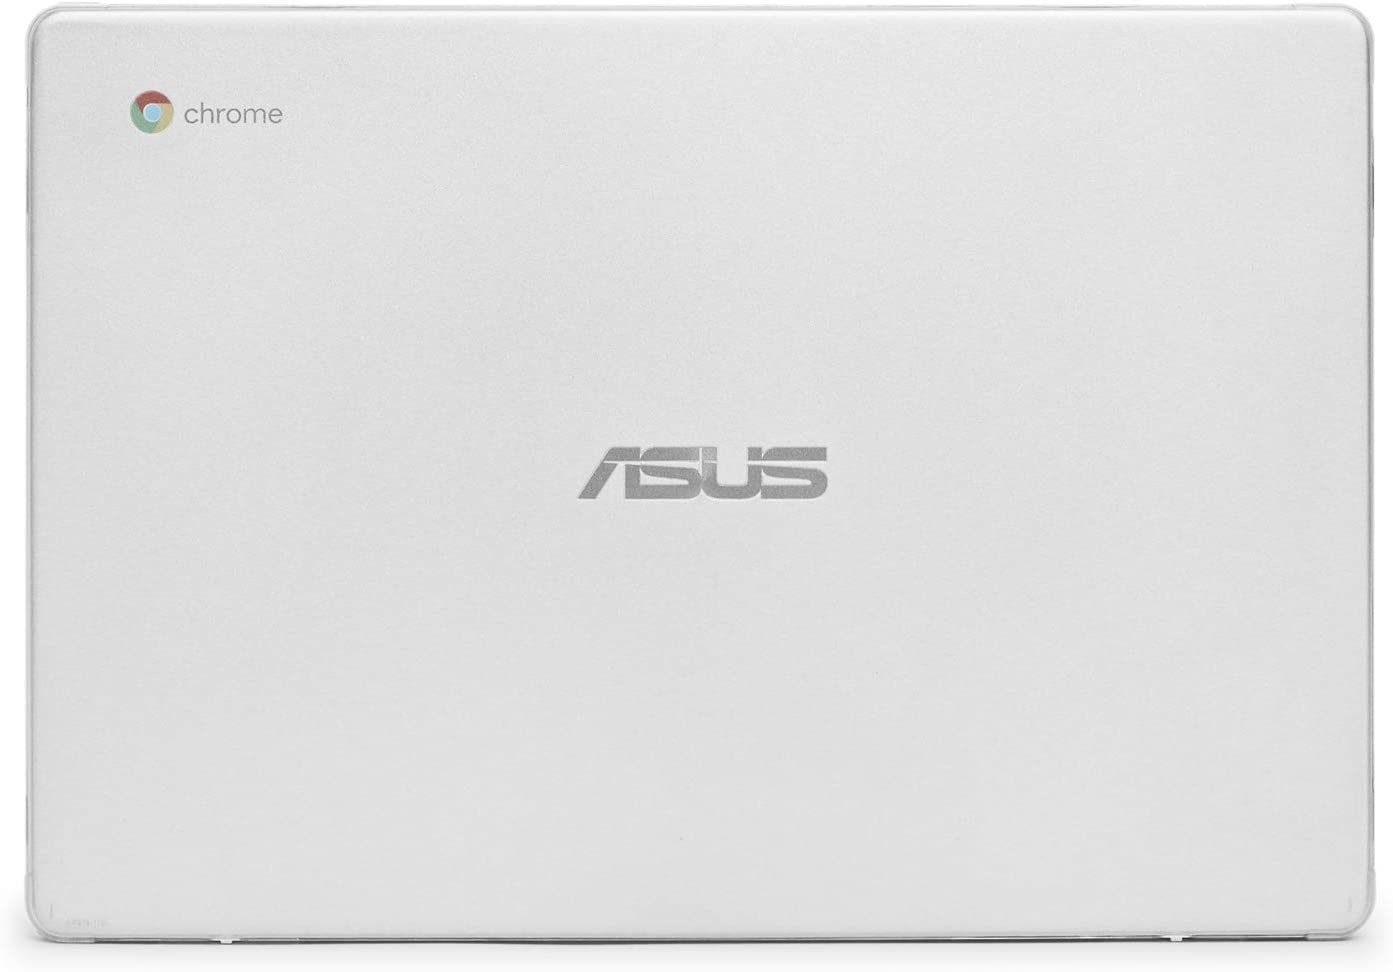 mCover Hard Shell Case for 2019 14-inch ASUS Chromebook C423NA Series Laptop - ASUS C423 Clear